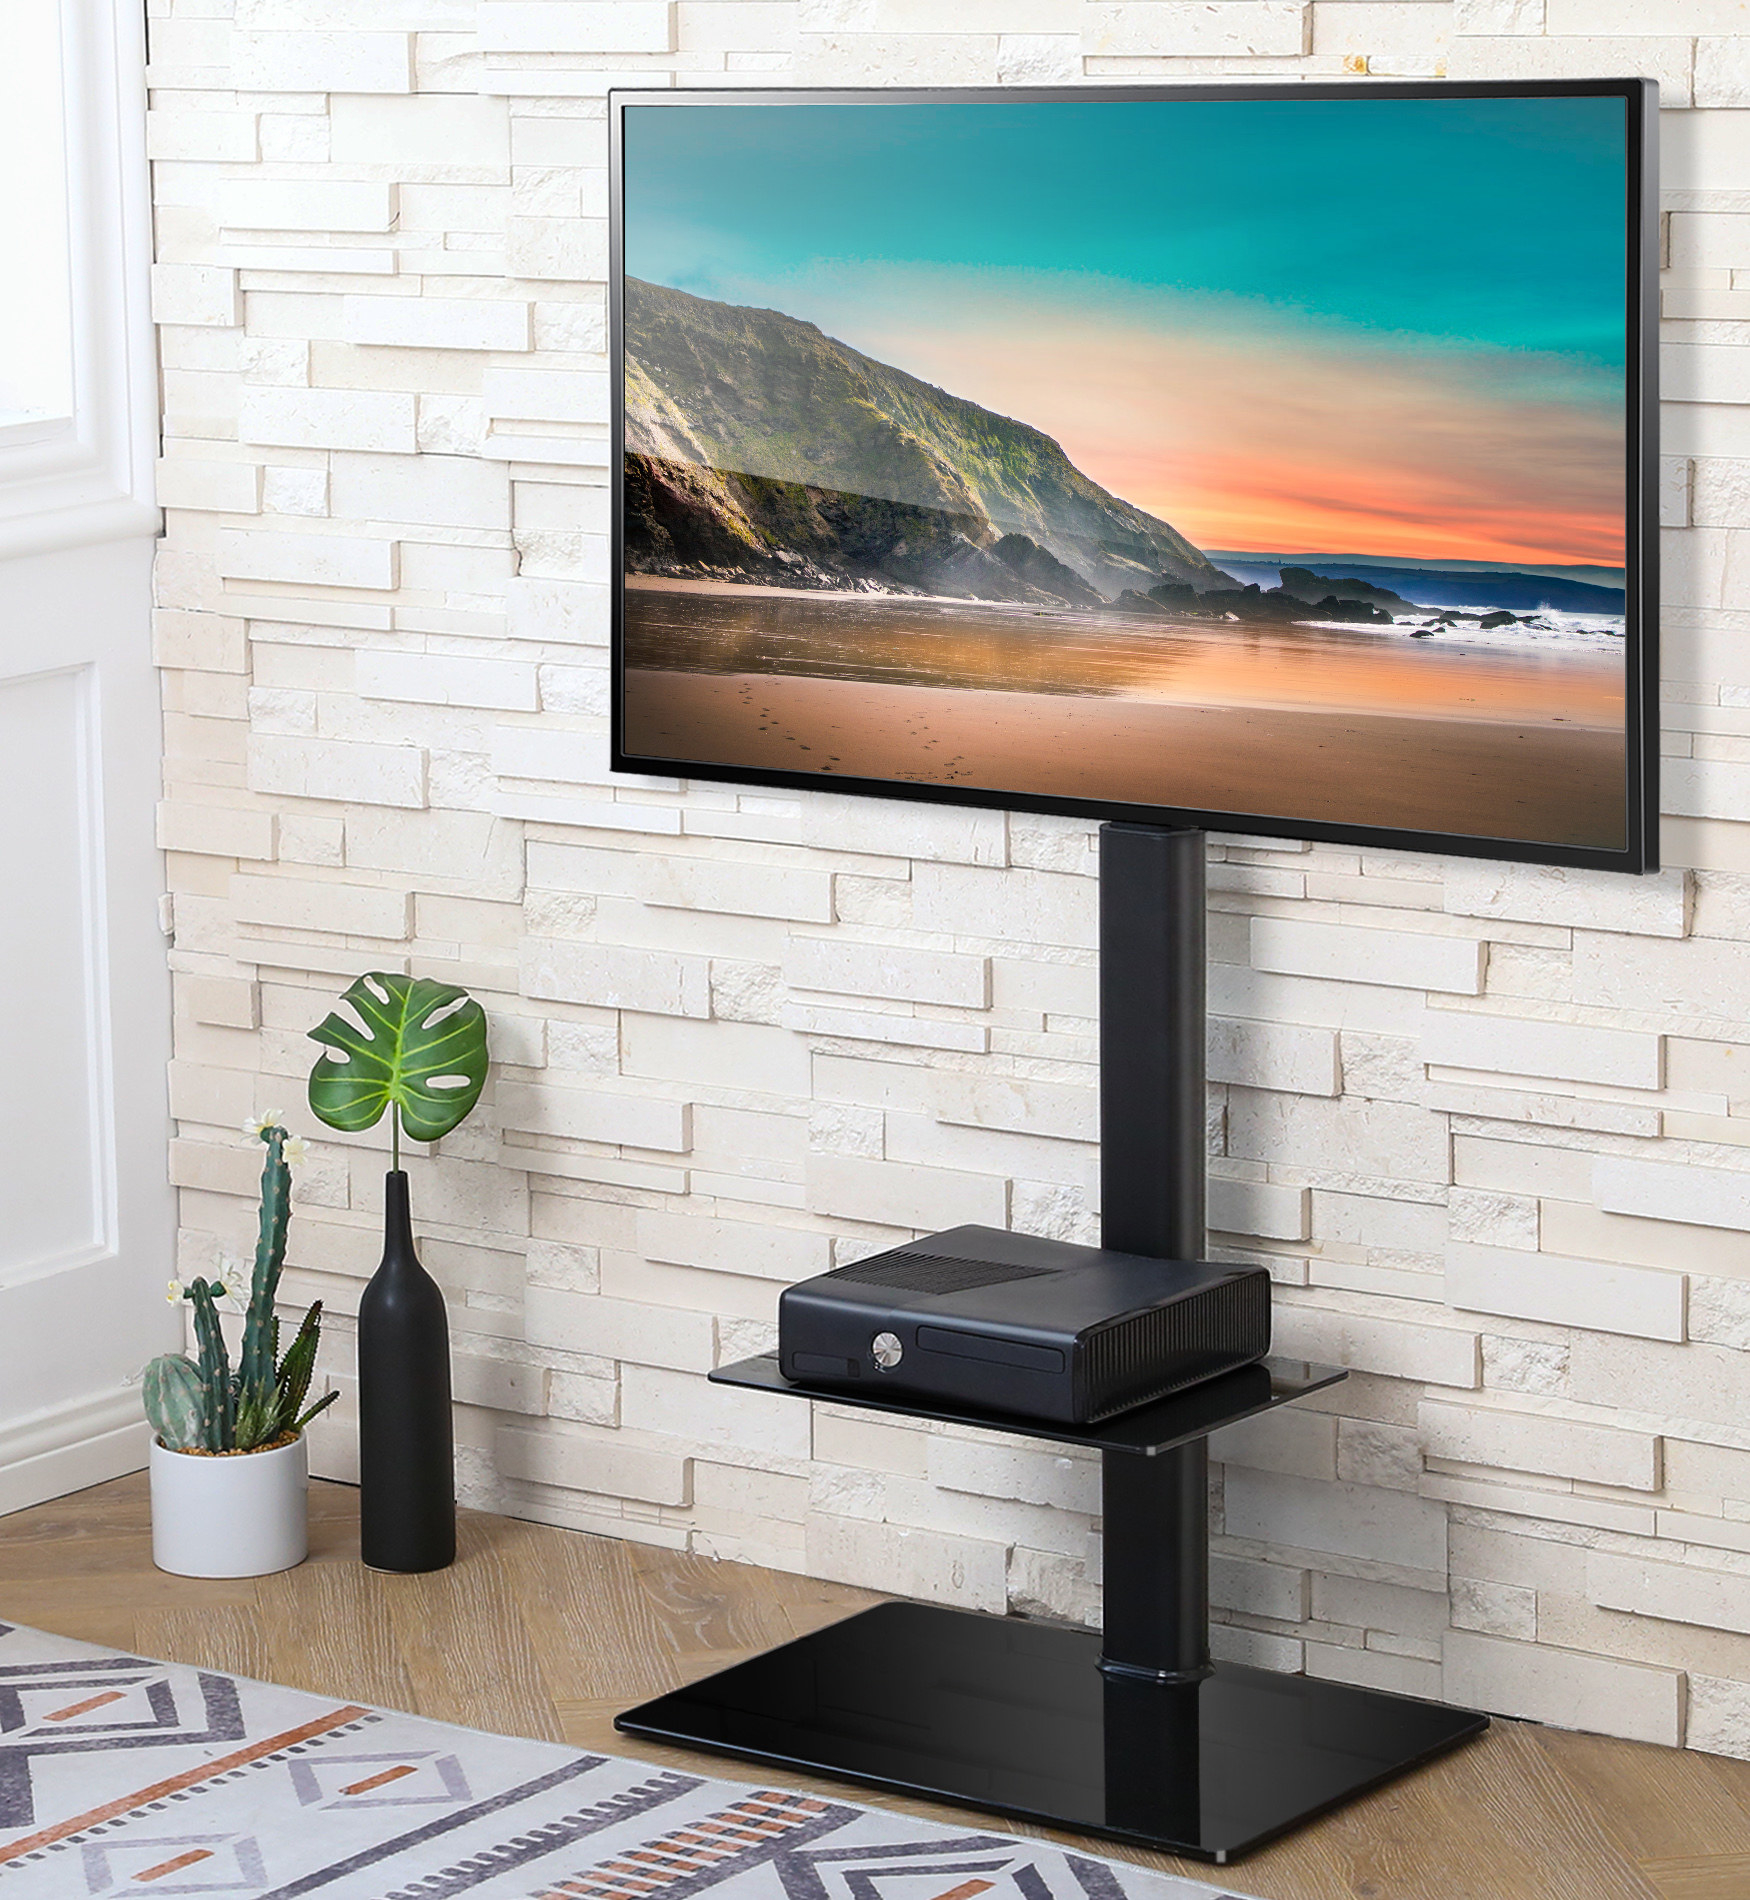 Theheight-adjustable floor TV stand with a swivel mount